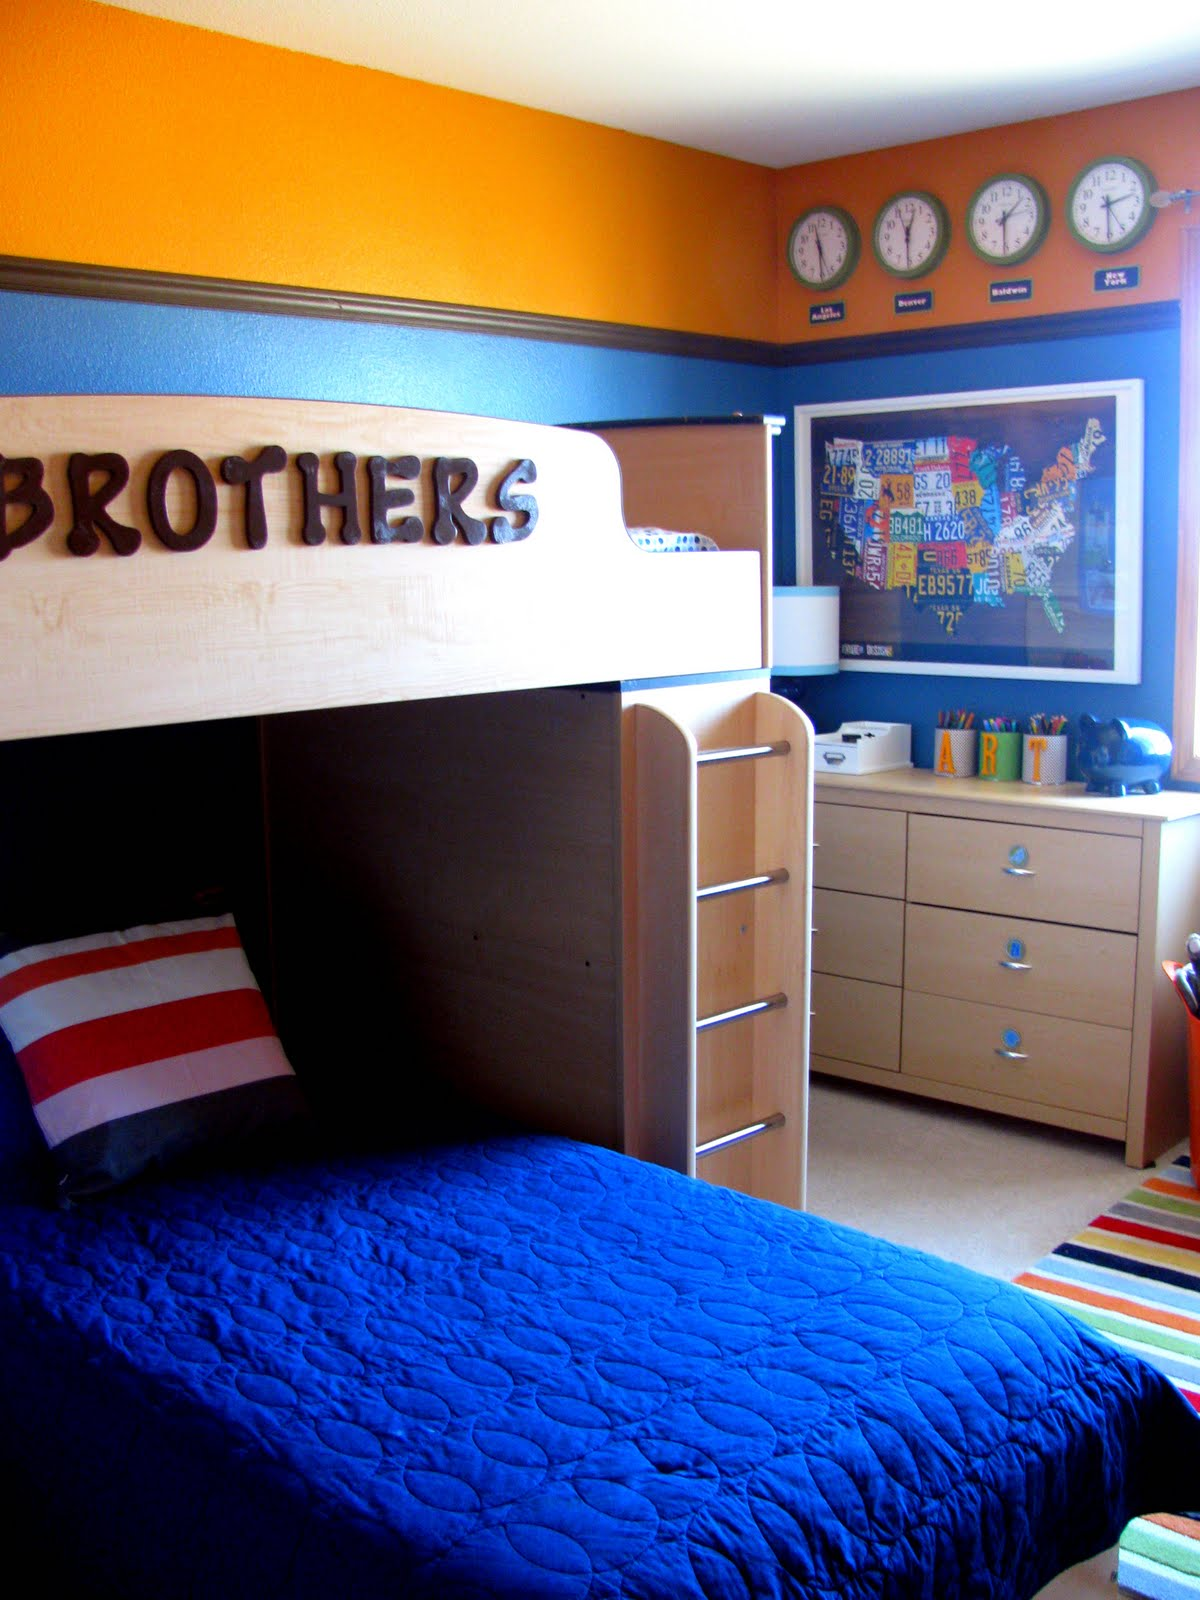 Kids bedroom painting ideas wallpress 1080p hd desktop for Boys room designs